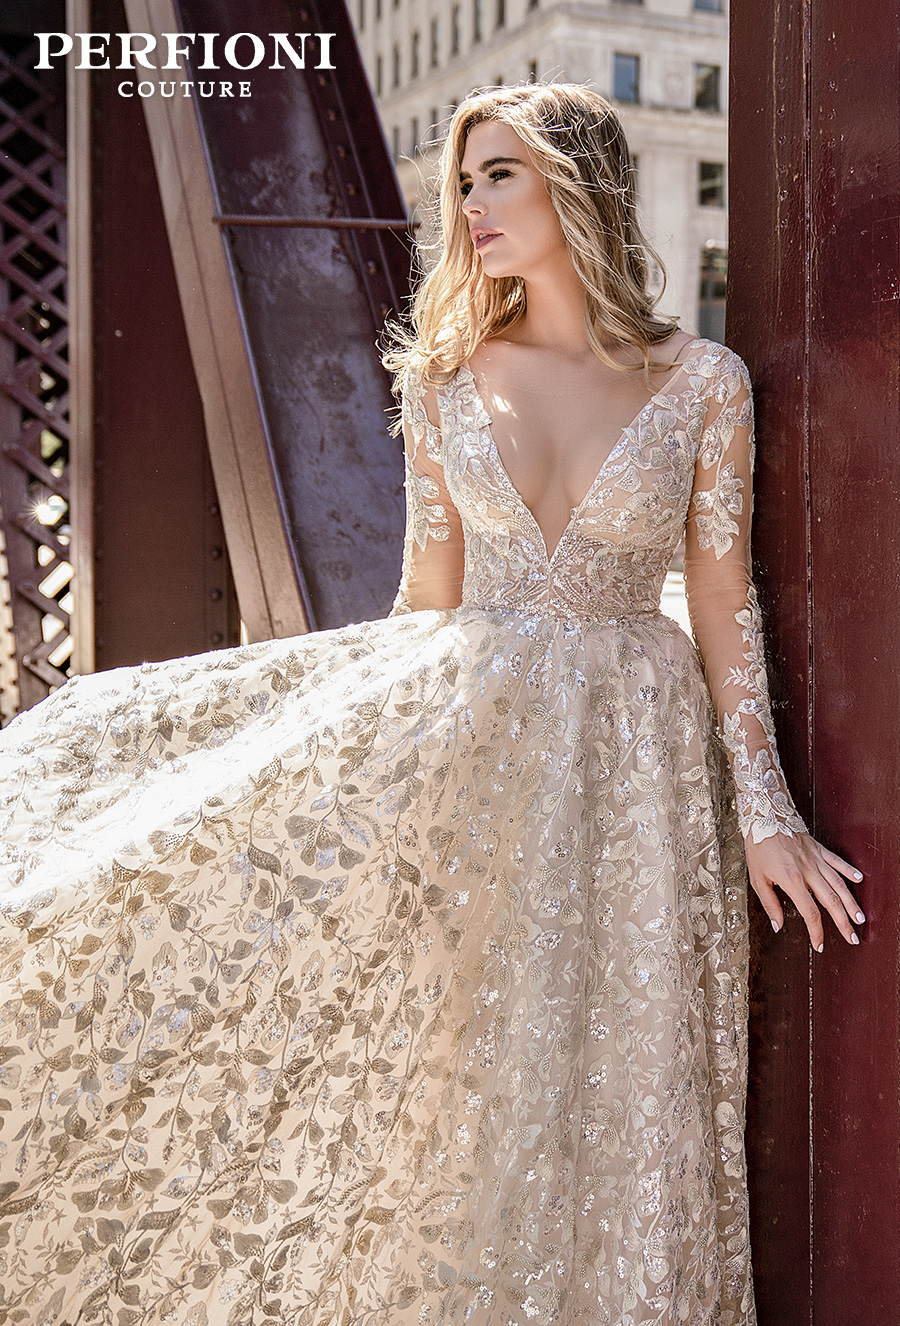 perfioni 2020 love season bridal long sleeves deep v neck full embellishment romantic glamorous gold a line wedding dress v back chapel train (010) zv